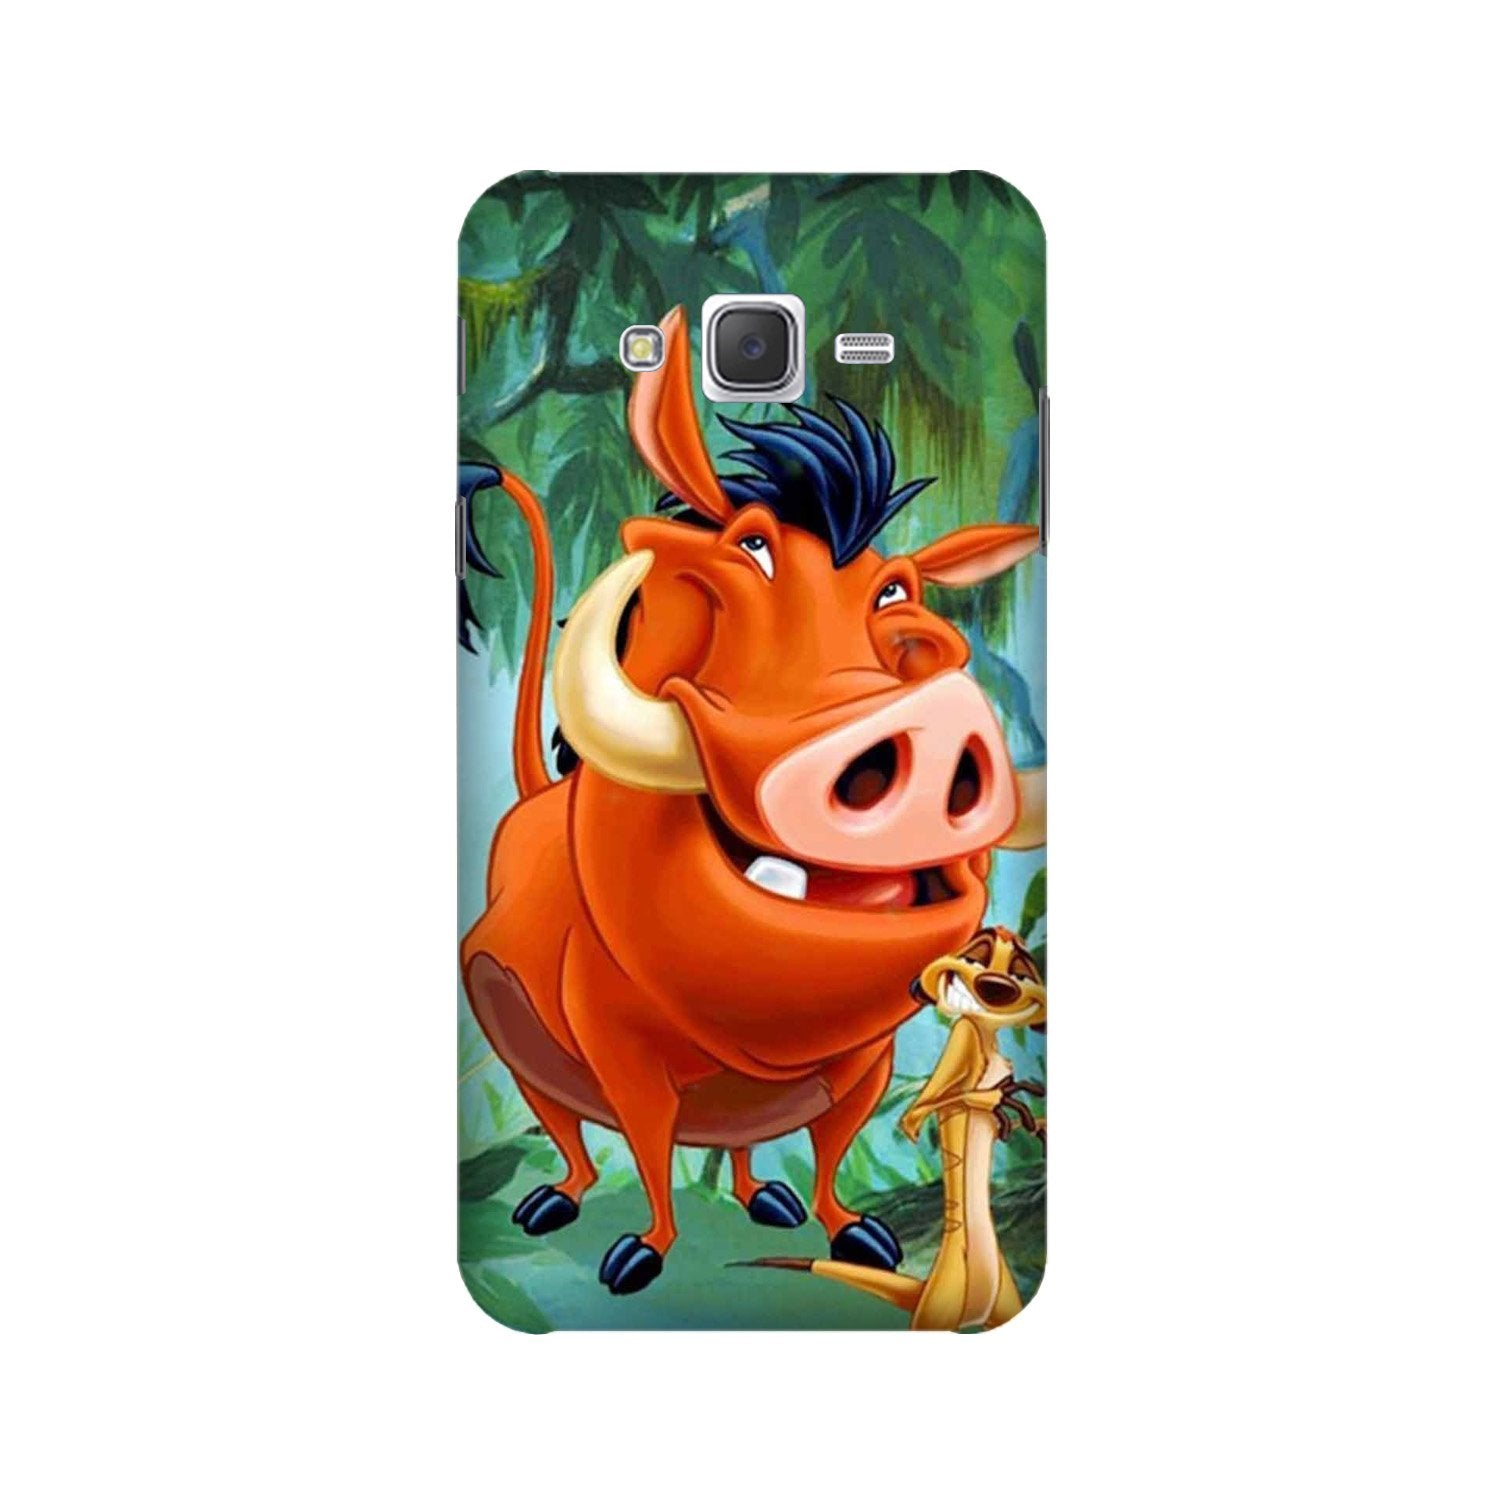 Timon and Pumbaa Mobile Back Case for Galaxy A3 (2015) (Design - 305)